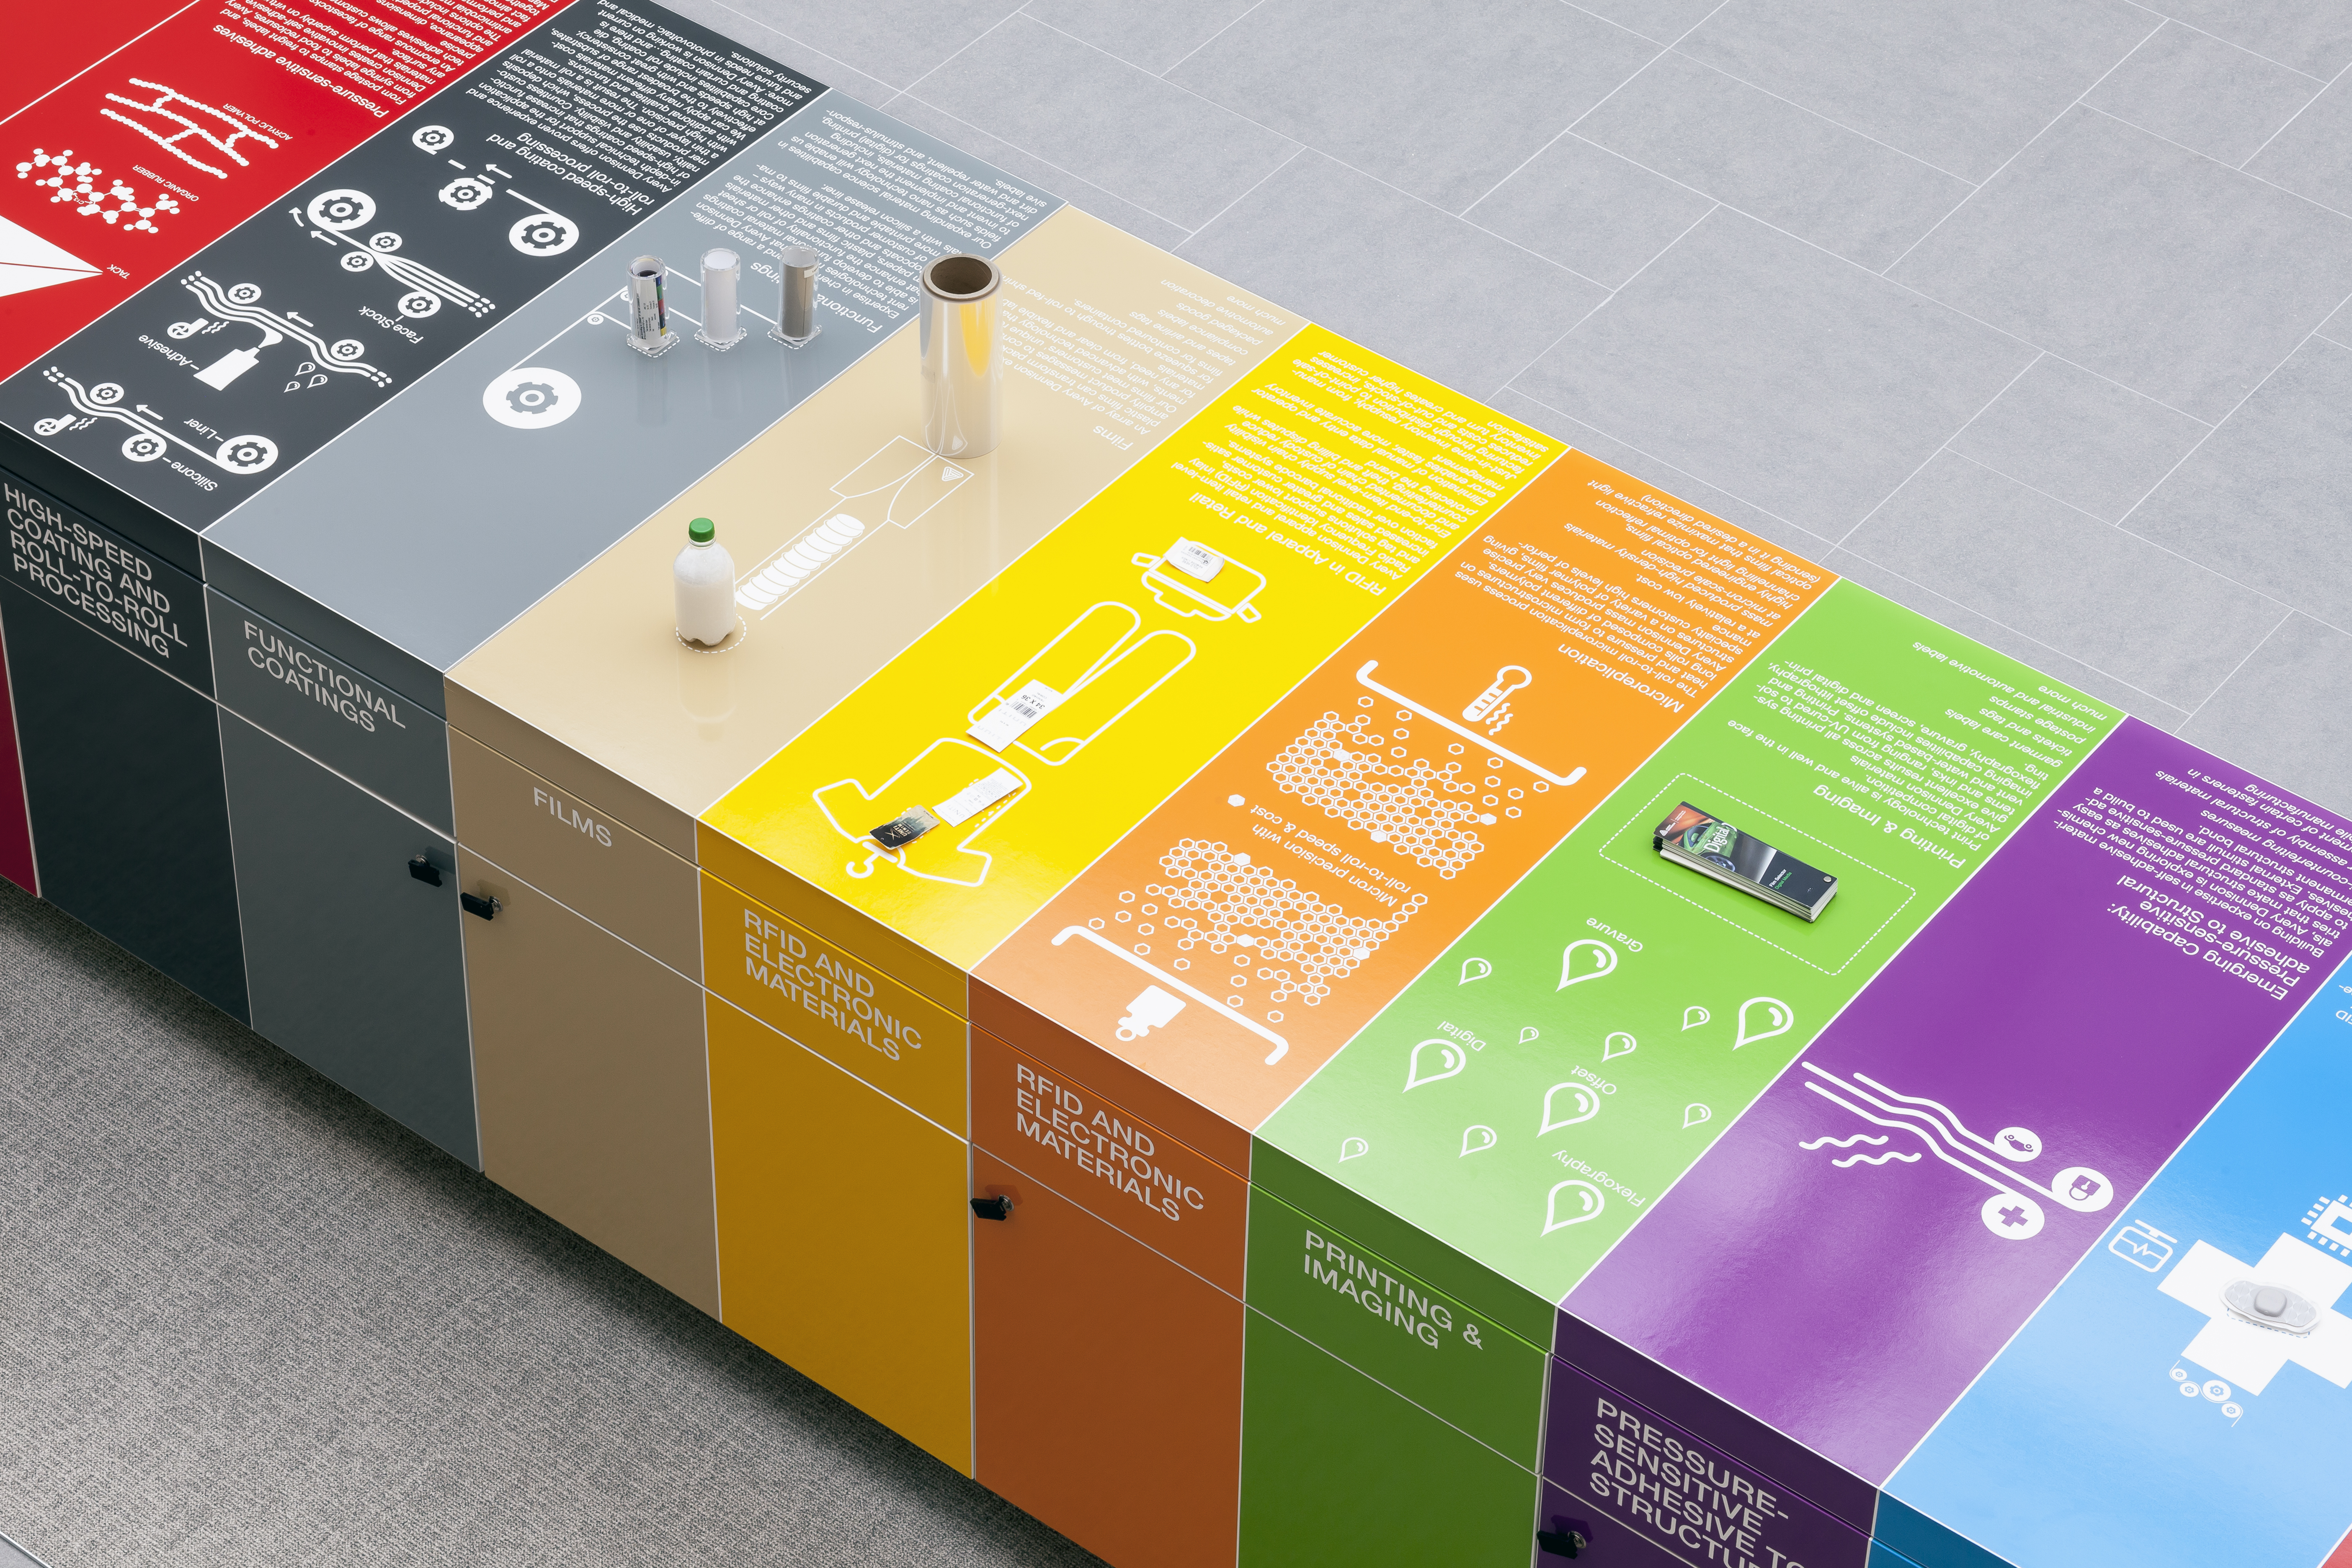 Top view on Avery Dennison's core competencies table with product examples